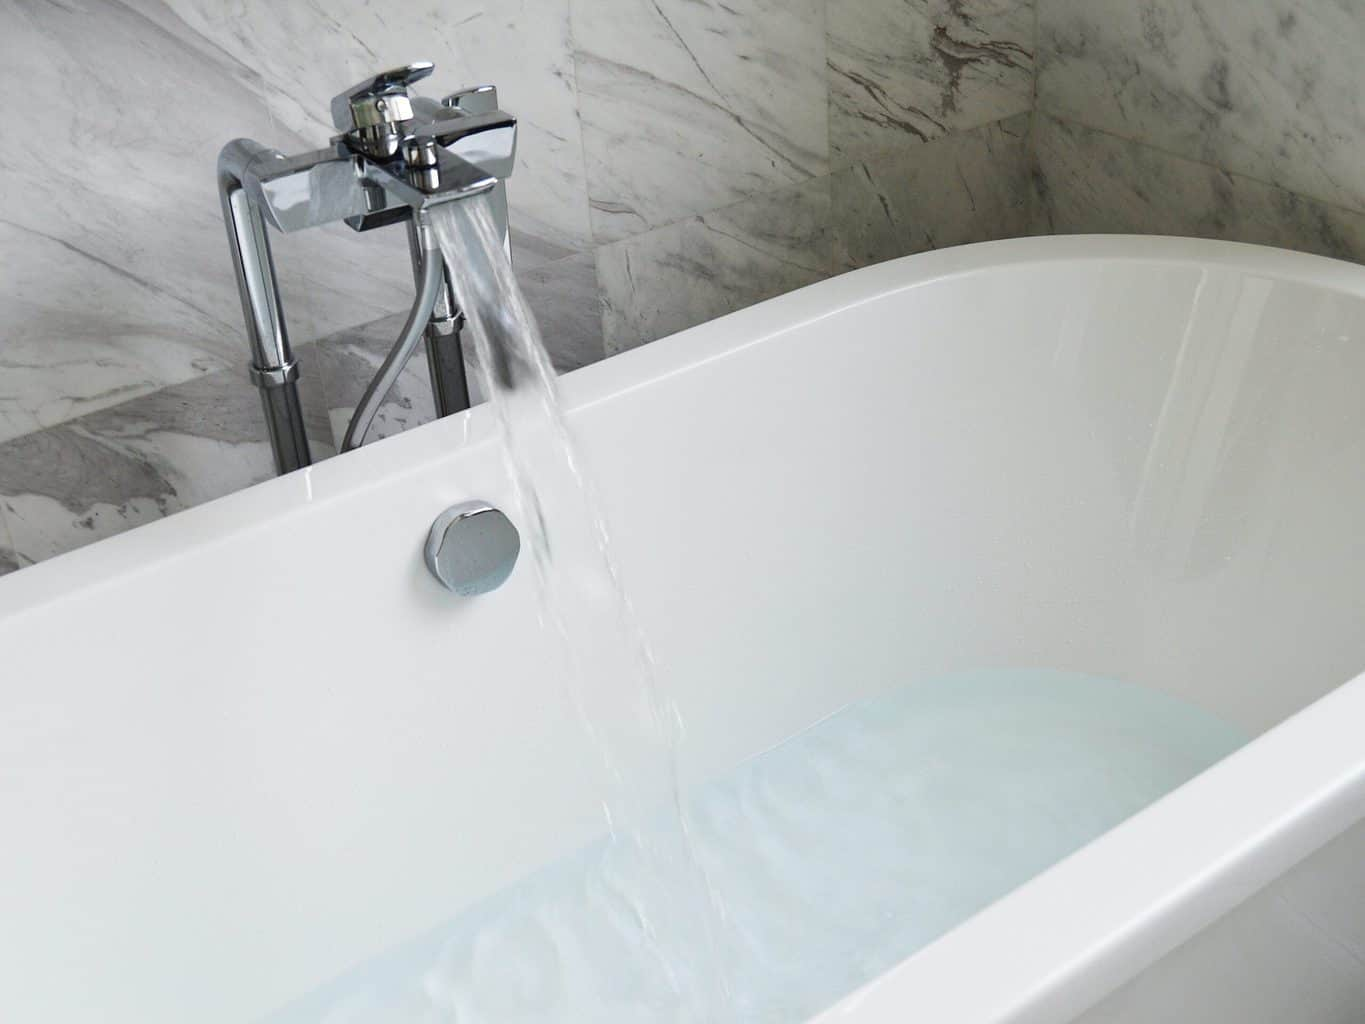 A bathtub with running water in faucet